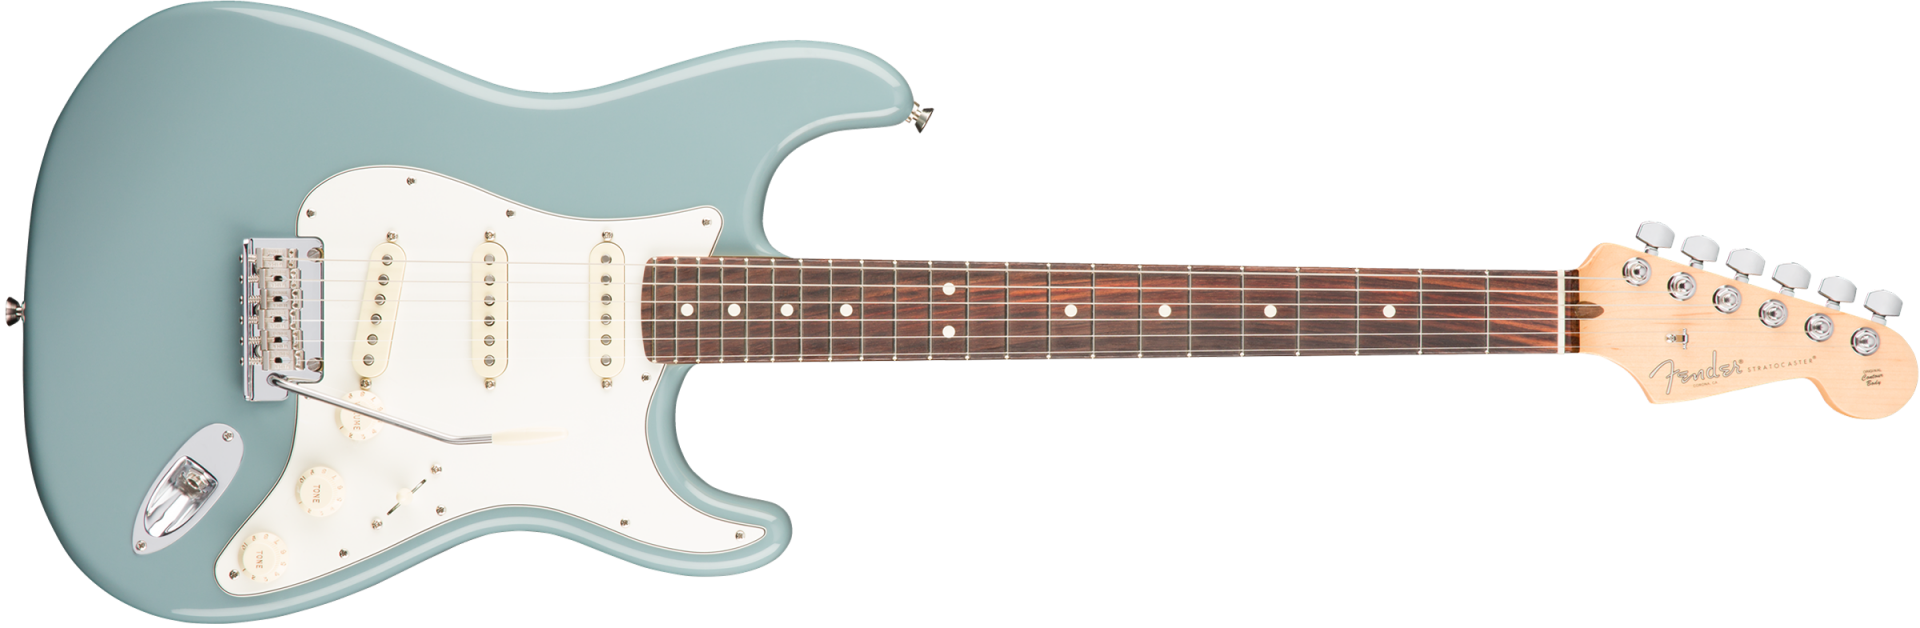 Fender American Pro Stratocaster RW SNG Made in USA